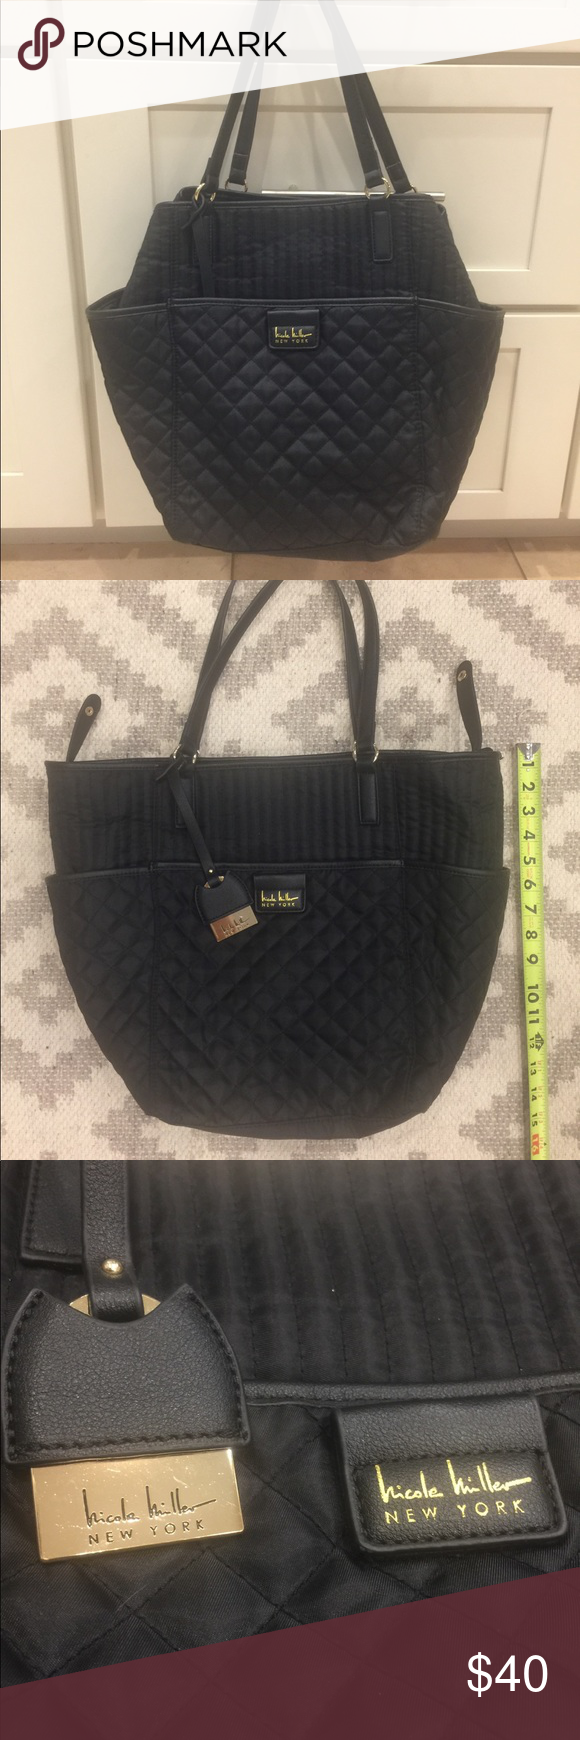 05d587f60fc3 Nicole Miller New York Tote diaper bag Like new Black quilted large Tote.  Animal